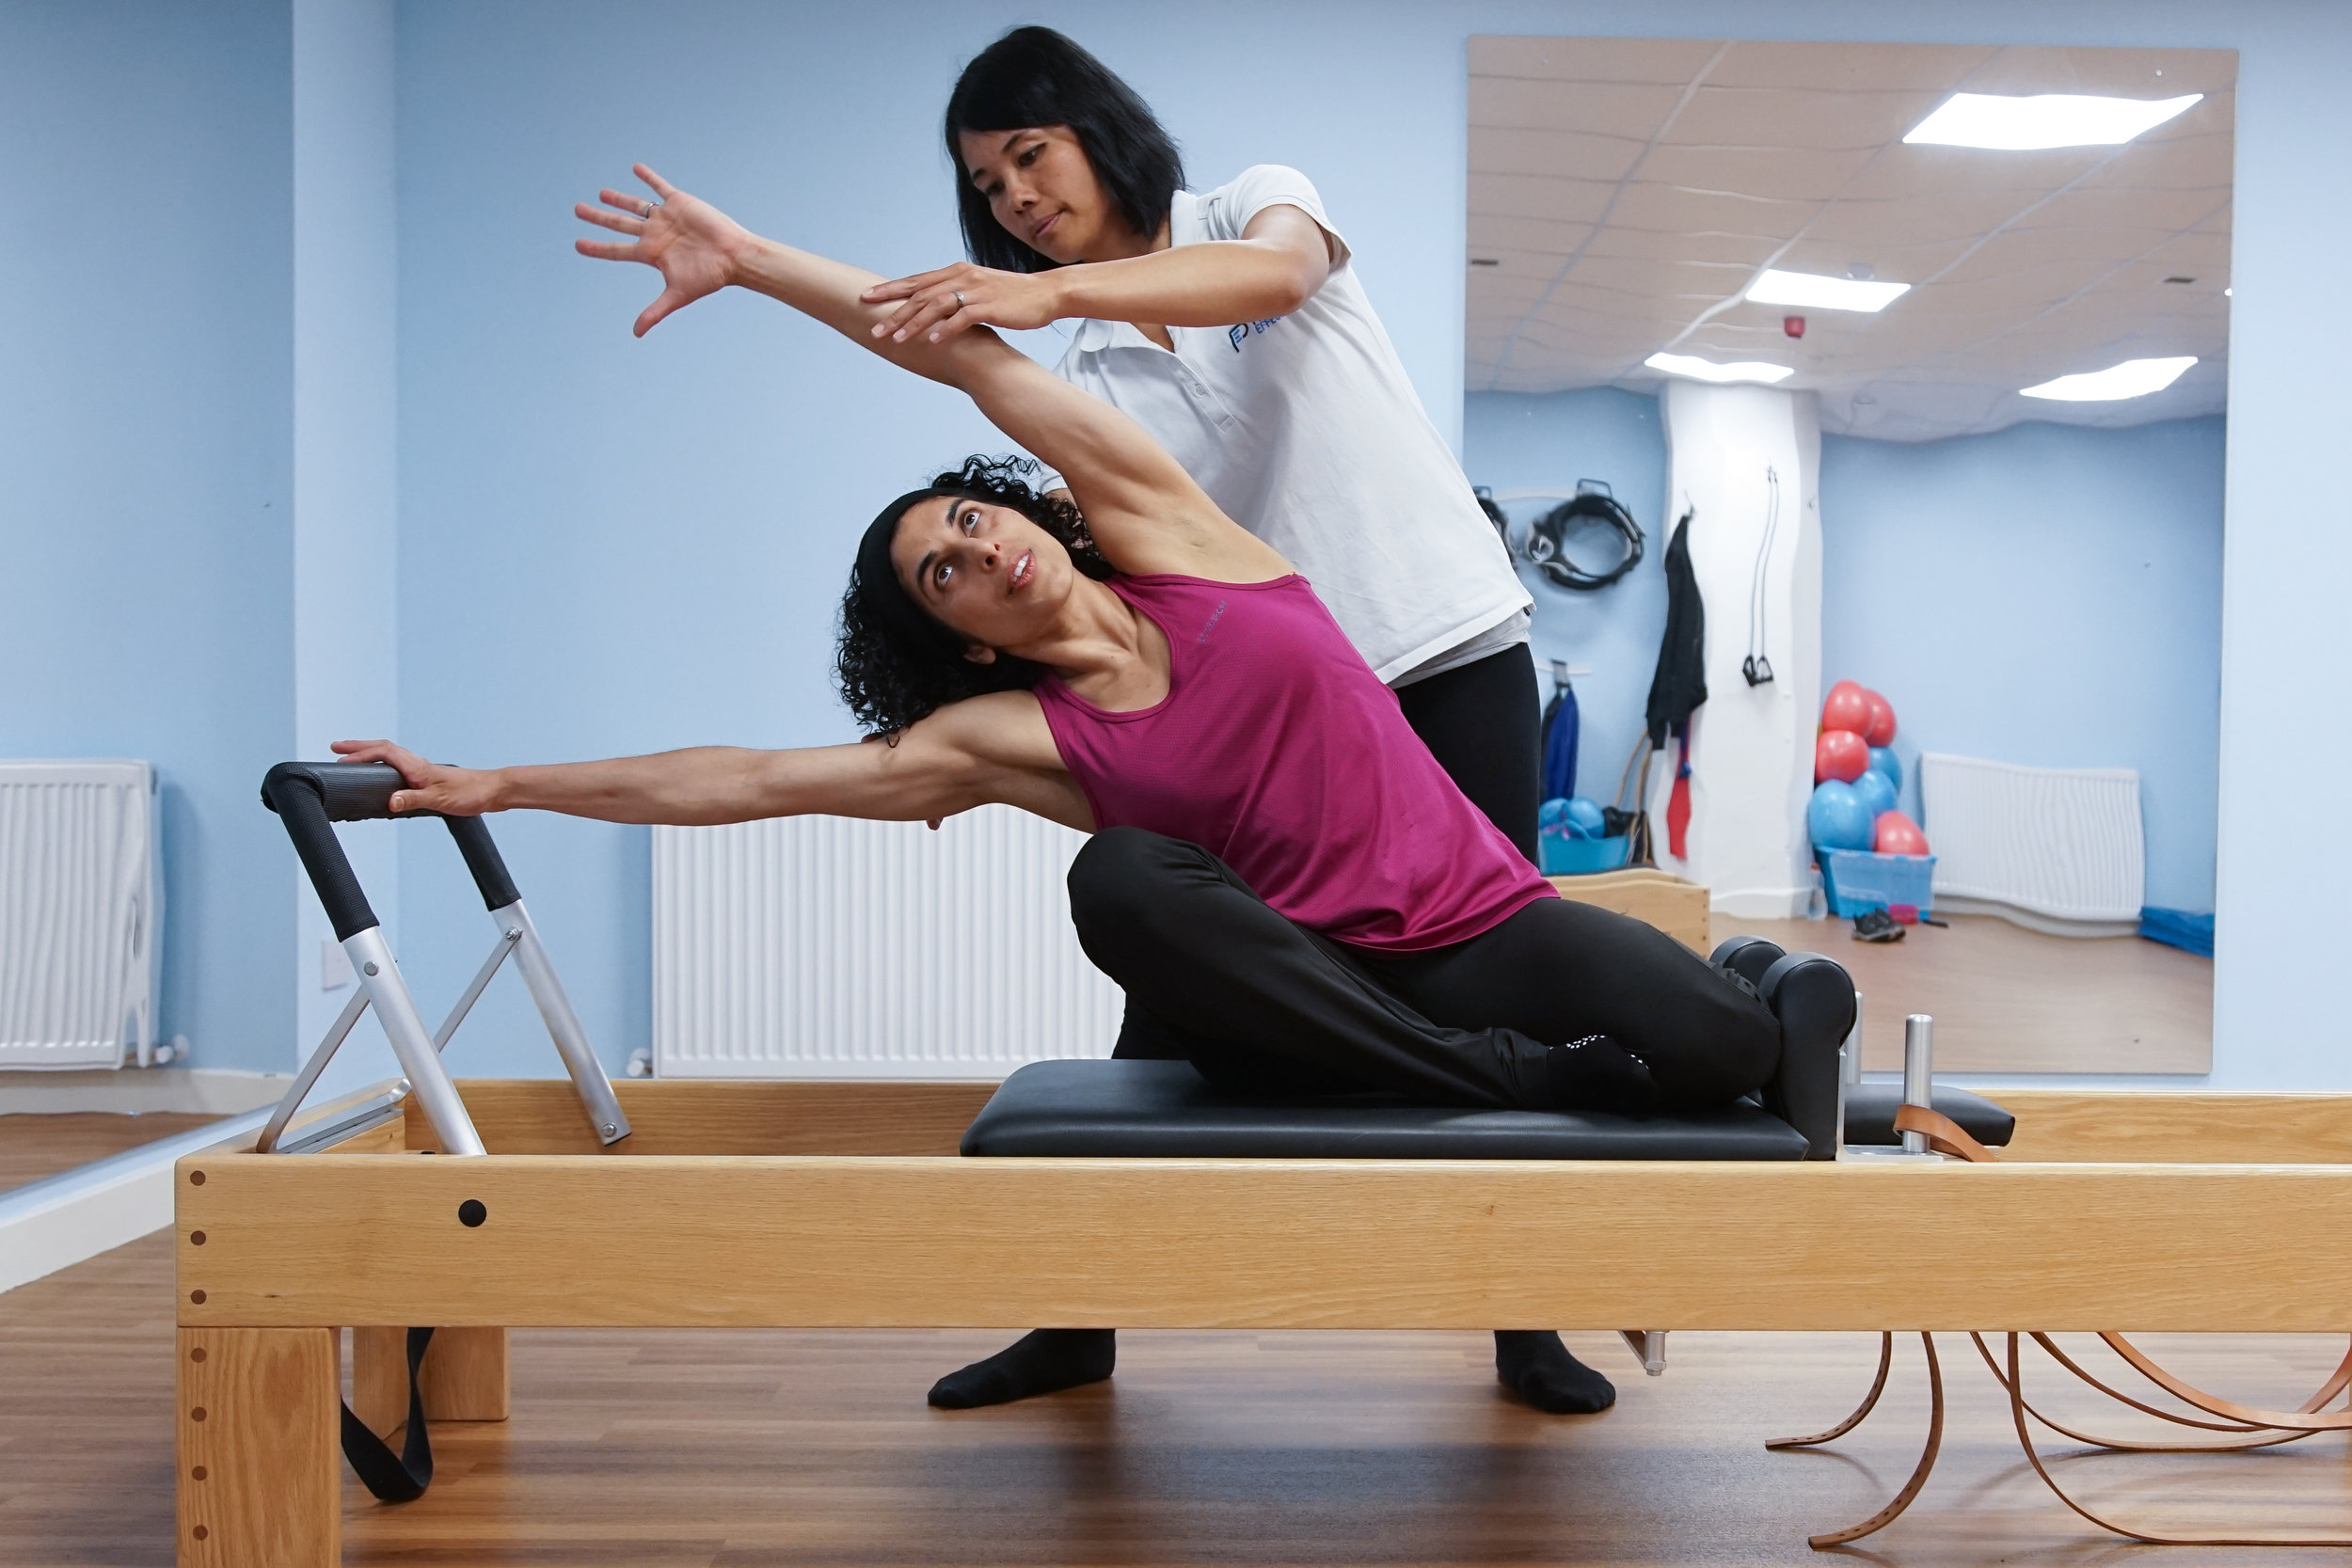 Clinical Pilates at Physio Effect Glasgow - Reformer